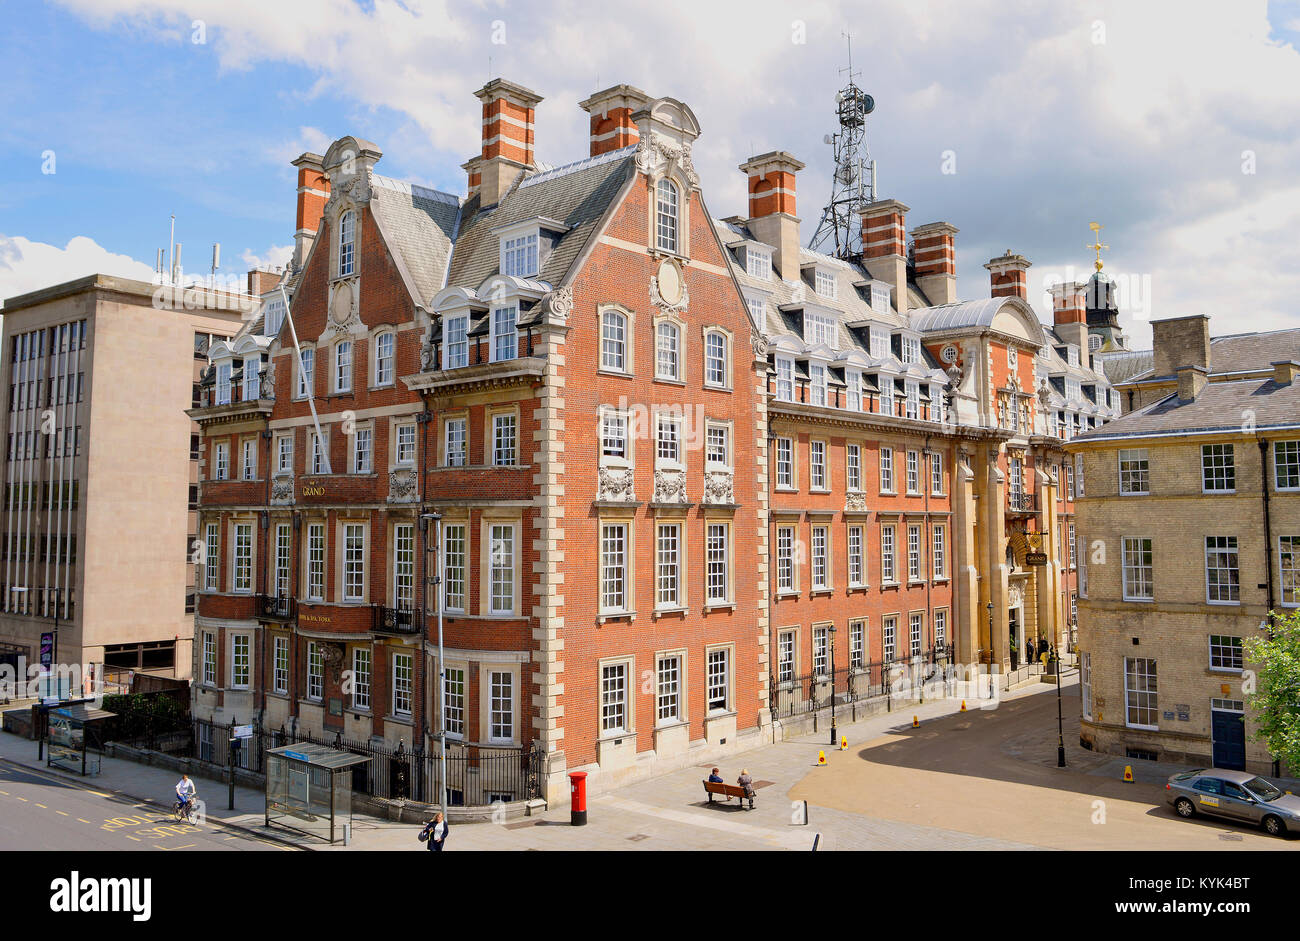 The Grand Hotel and Spa in the centre of York - Stock Image